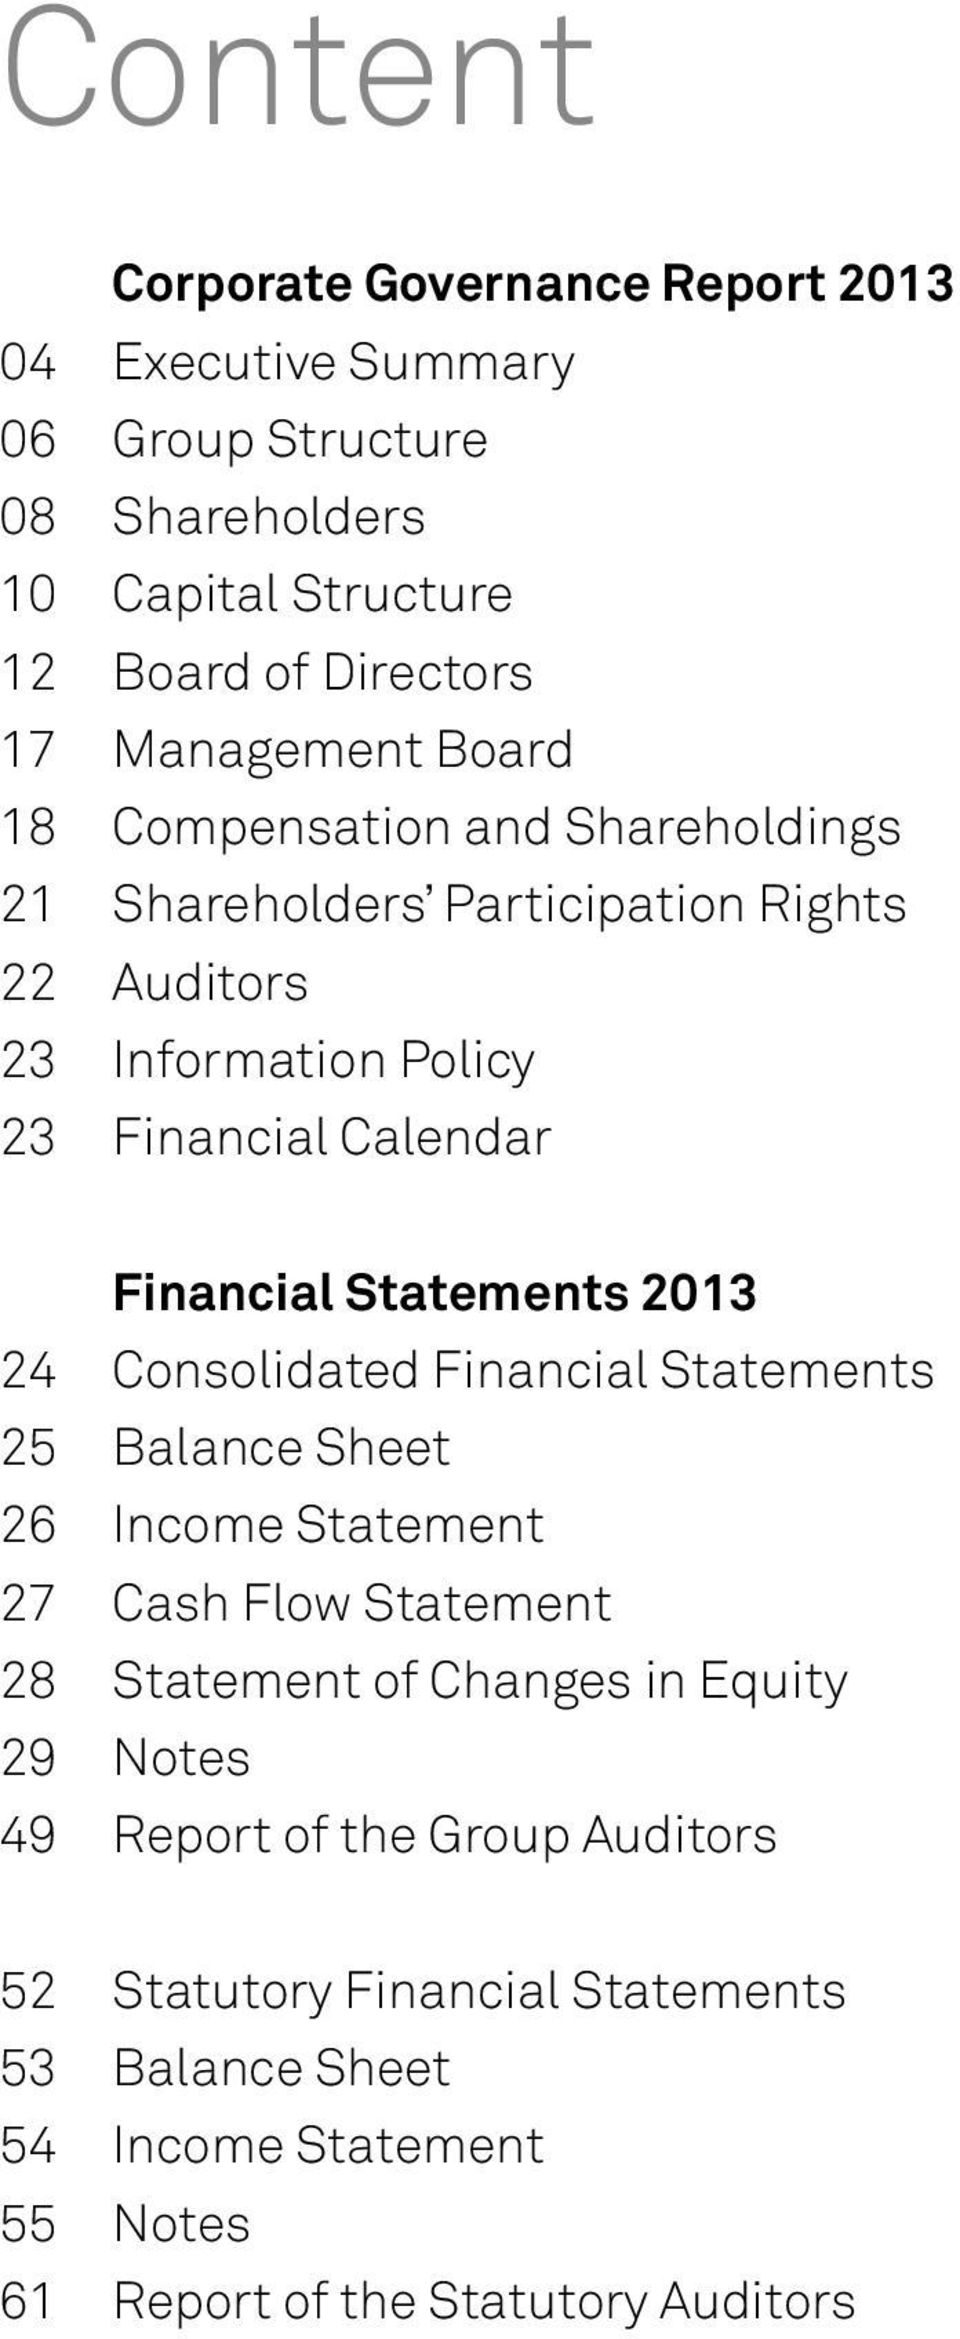 Financial Statements 2013 24 Consolidated Financial Statements 25 Balance Sheet 26 Income Statement 27 Cash Flow Statement 28 Statement of Changes in